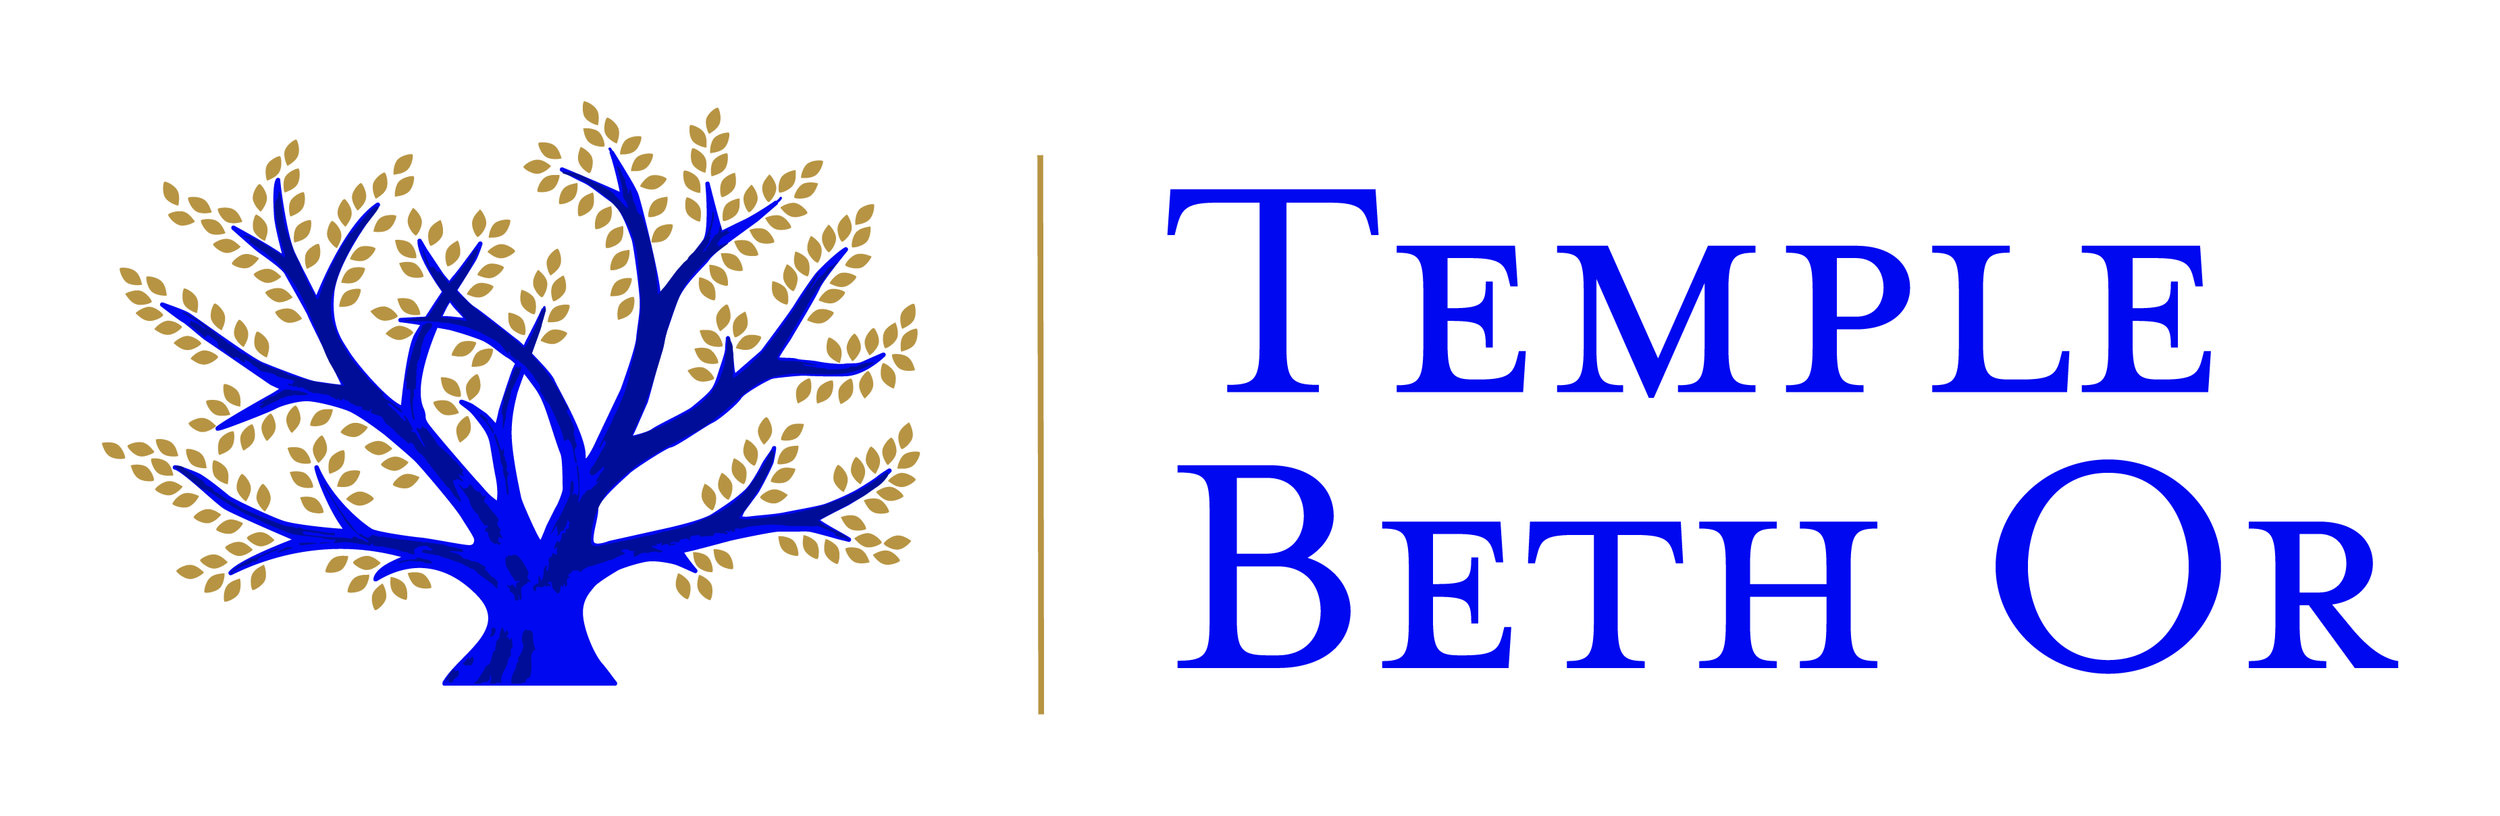 Temple Beth Or logo.jpg